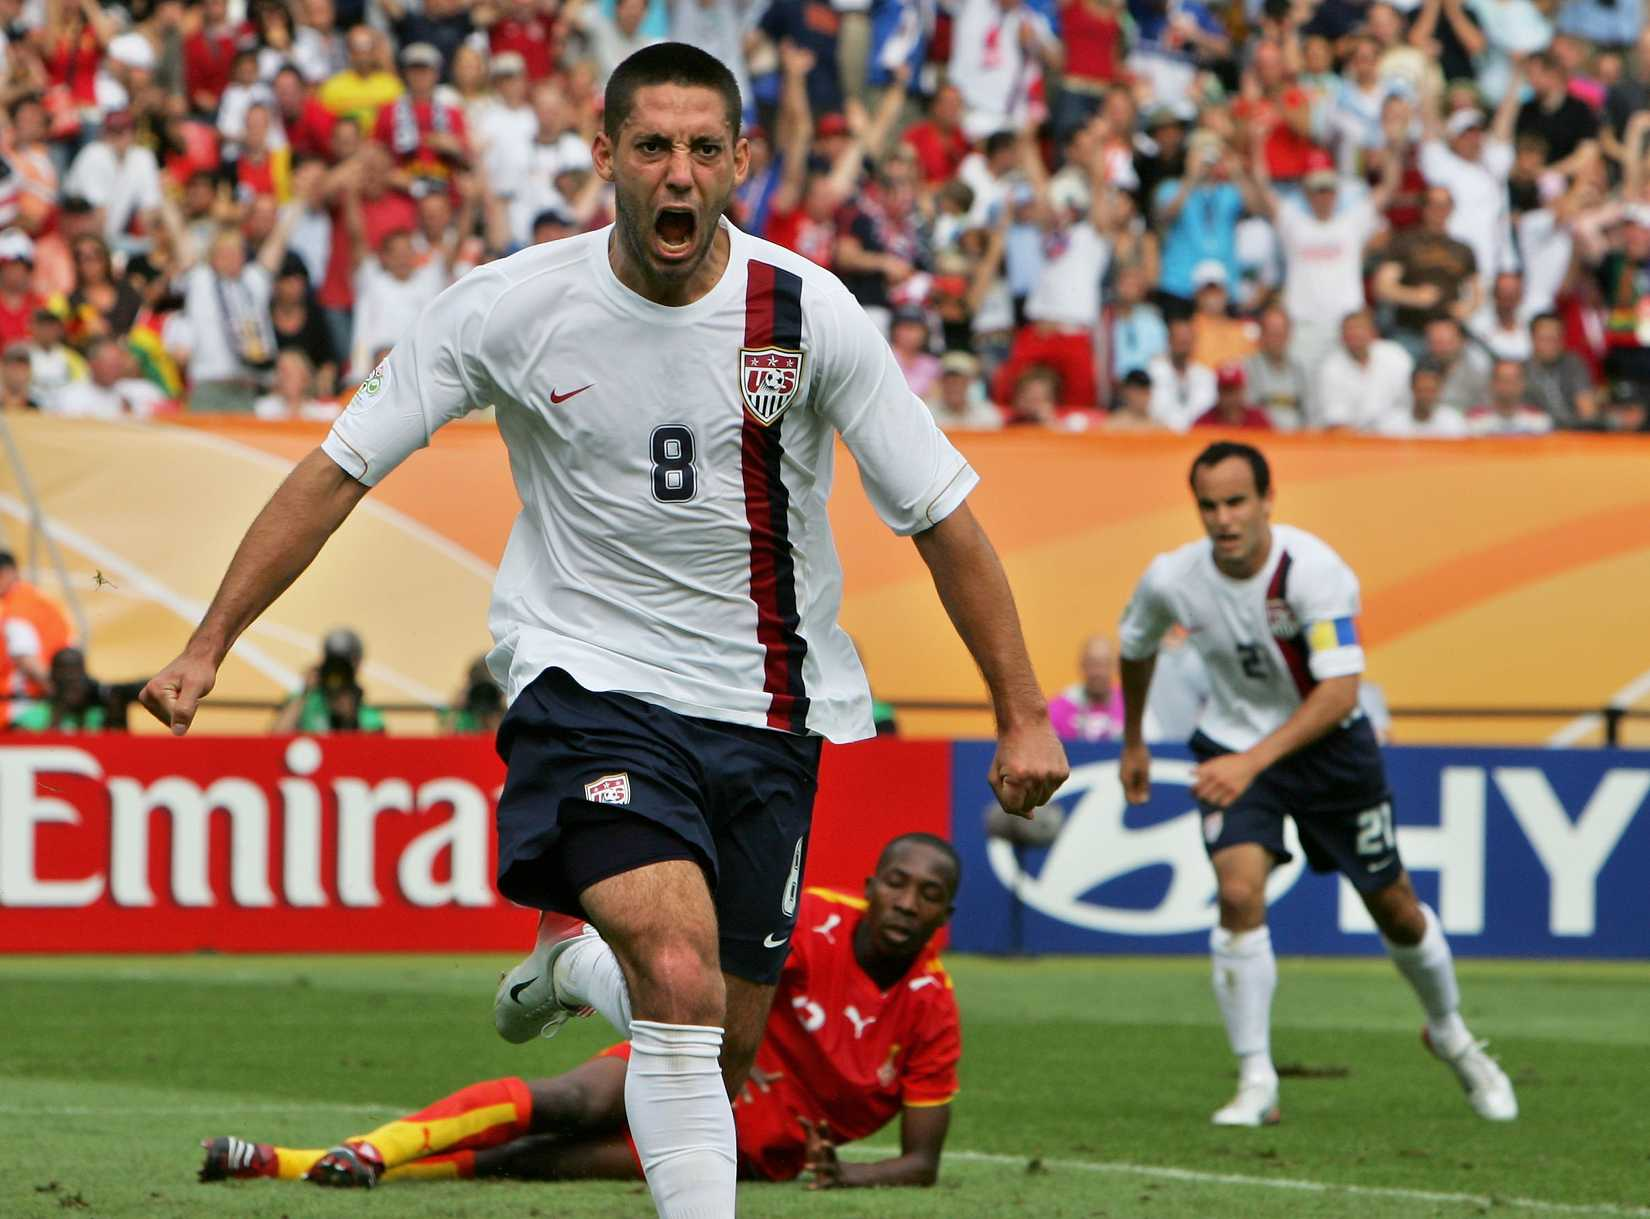 Clint Dempsey has been the best American soccer player since 2006 and maybe earlier.